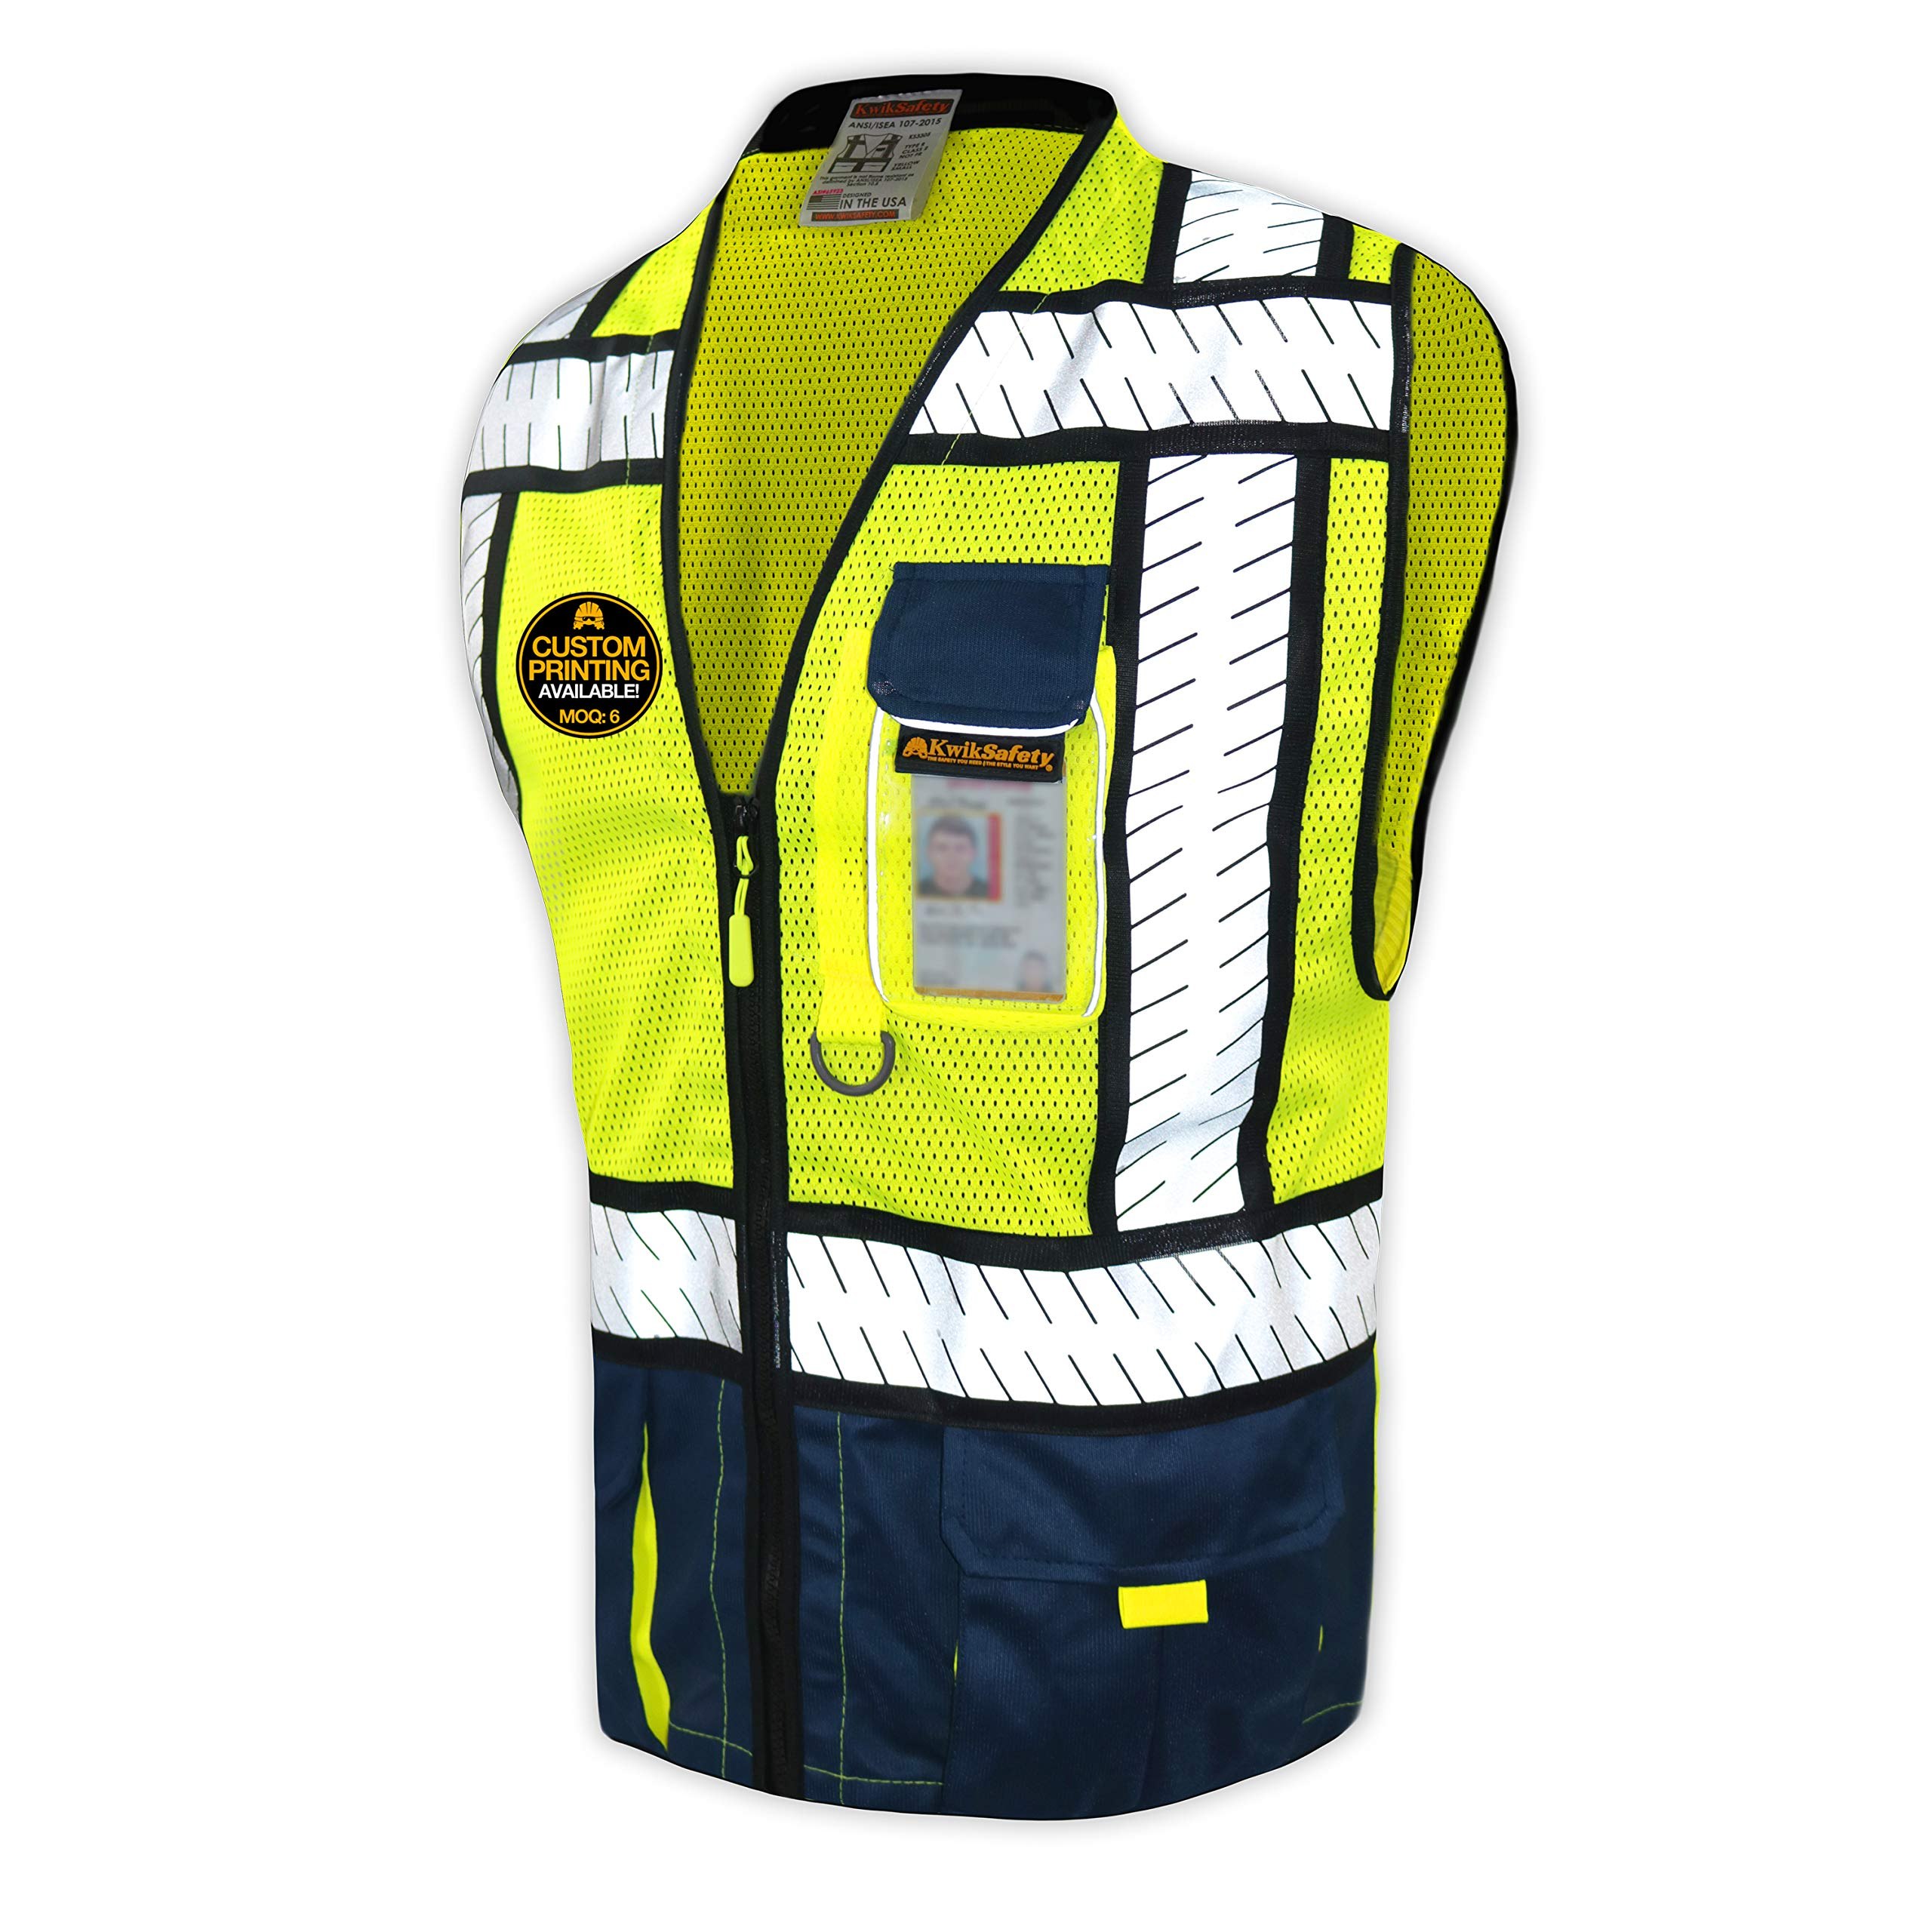 KwikSafety (Charlotte, NC) SHERIFF (Multi-Use Pockets) Class 2 ANSI High Visibility Reflective Safety Vest Heavy Duty Solid/Mesh and with zipper HiVis Construction Surveyor Work Mens Blue SMALL